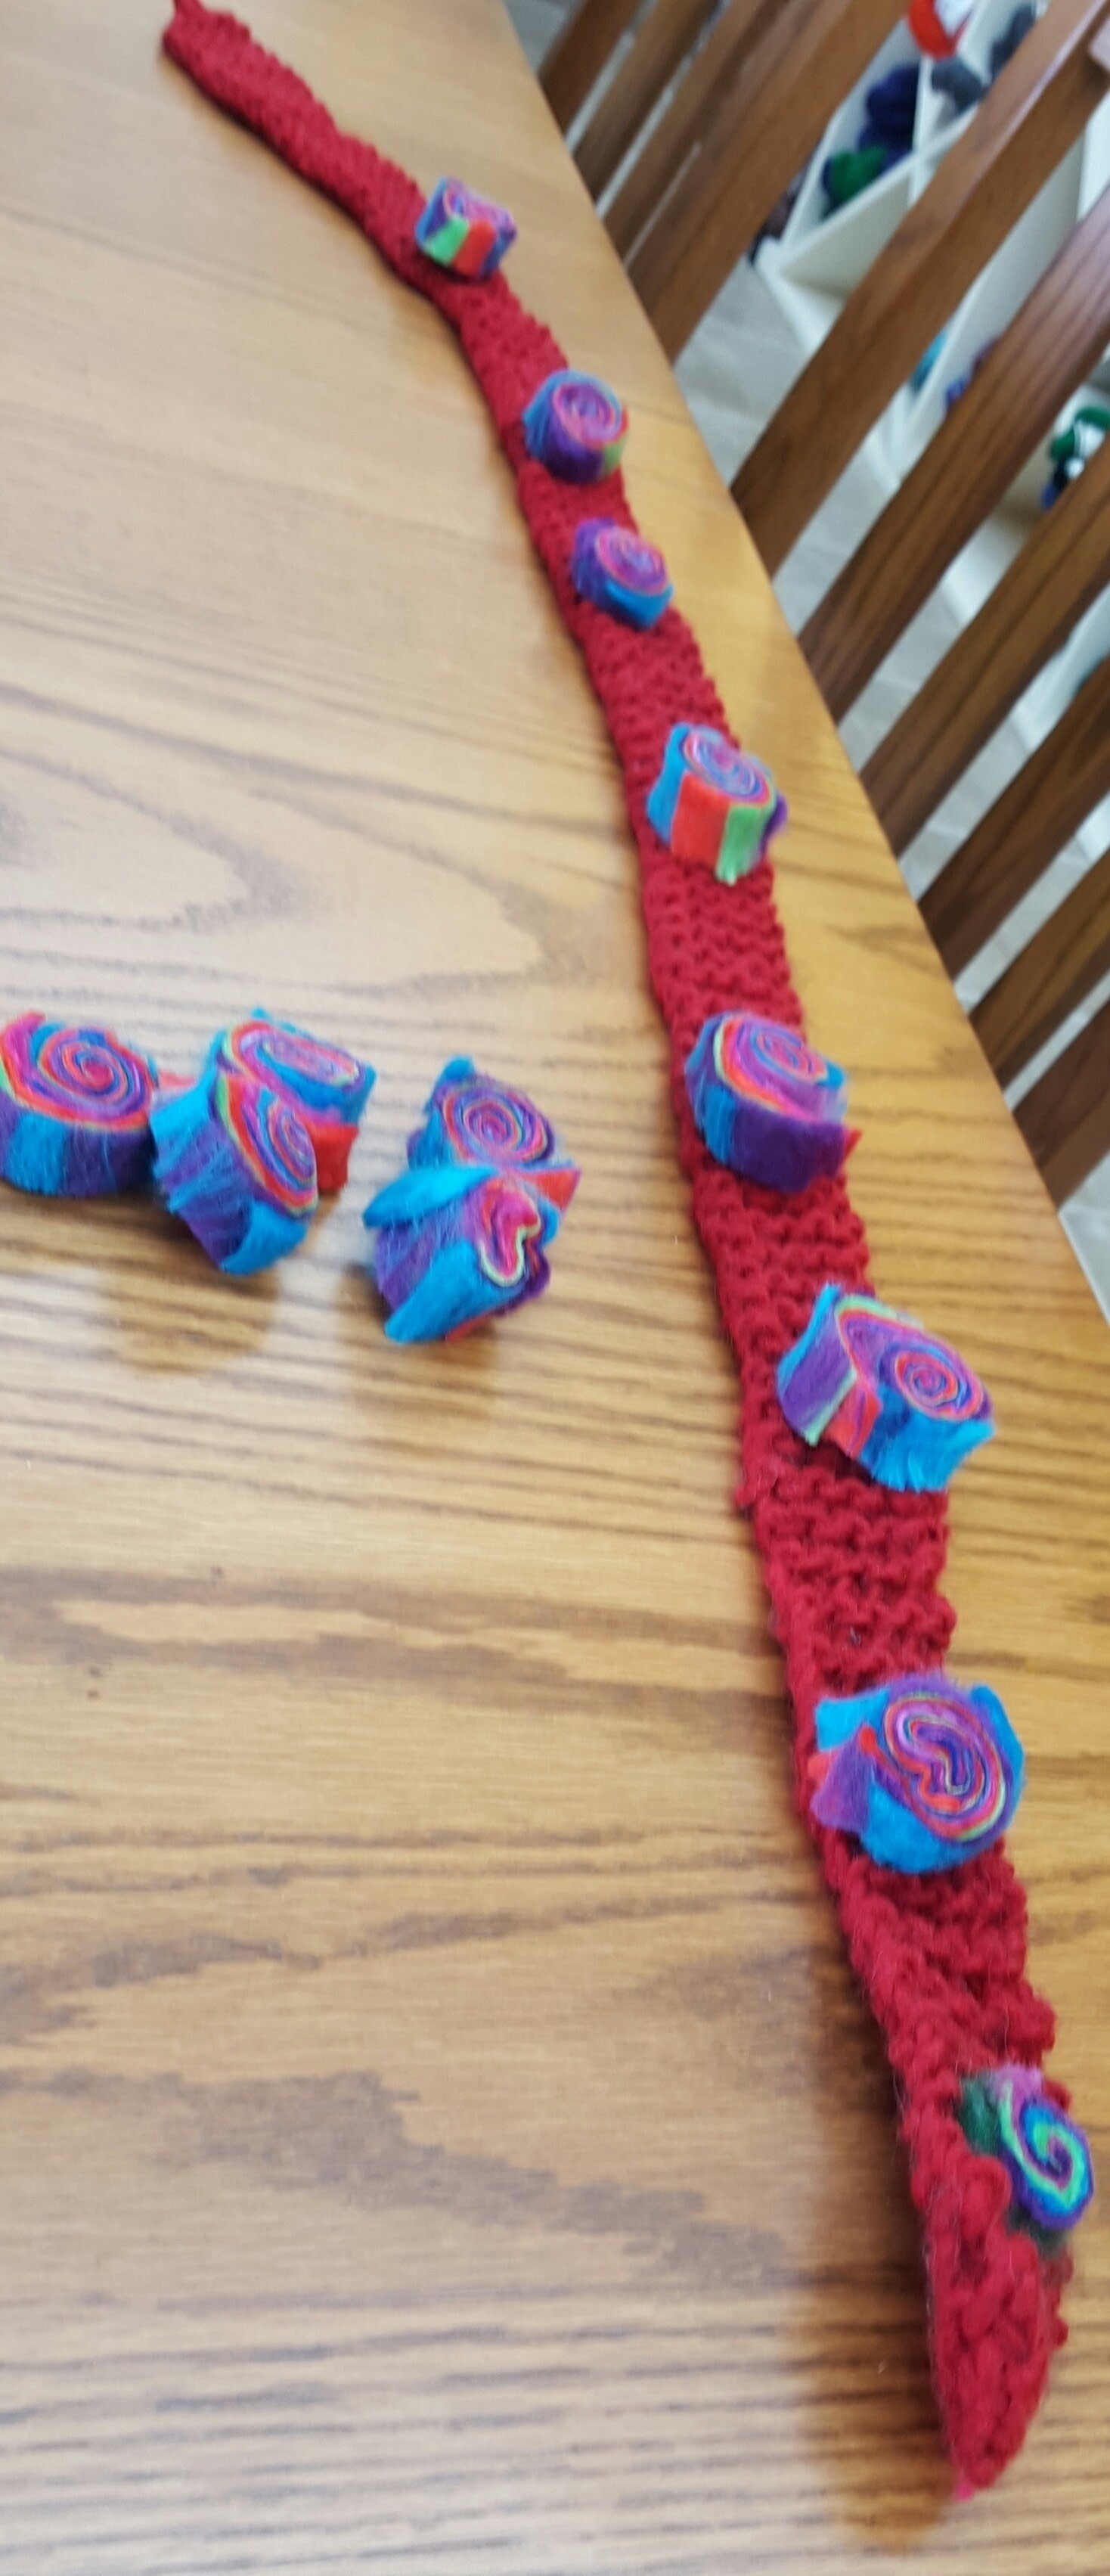 Make a Felted Jelly Roll Scarf with Ophir Yarn in Ann Arbor, Michigan.